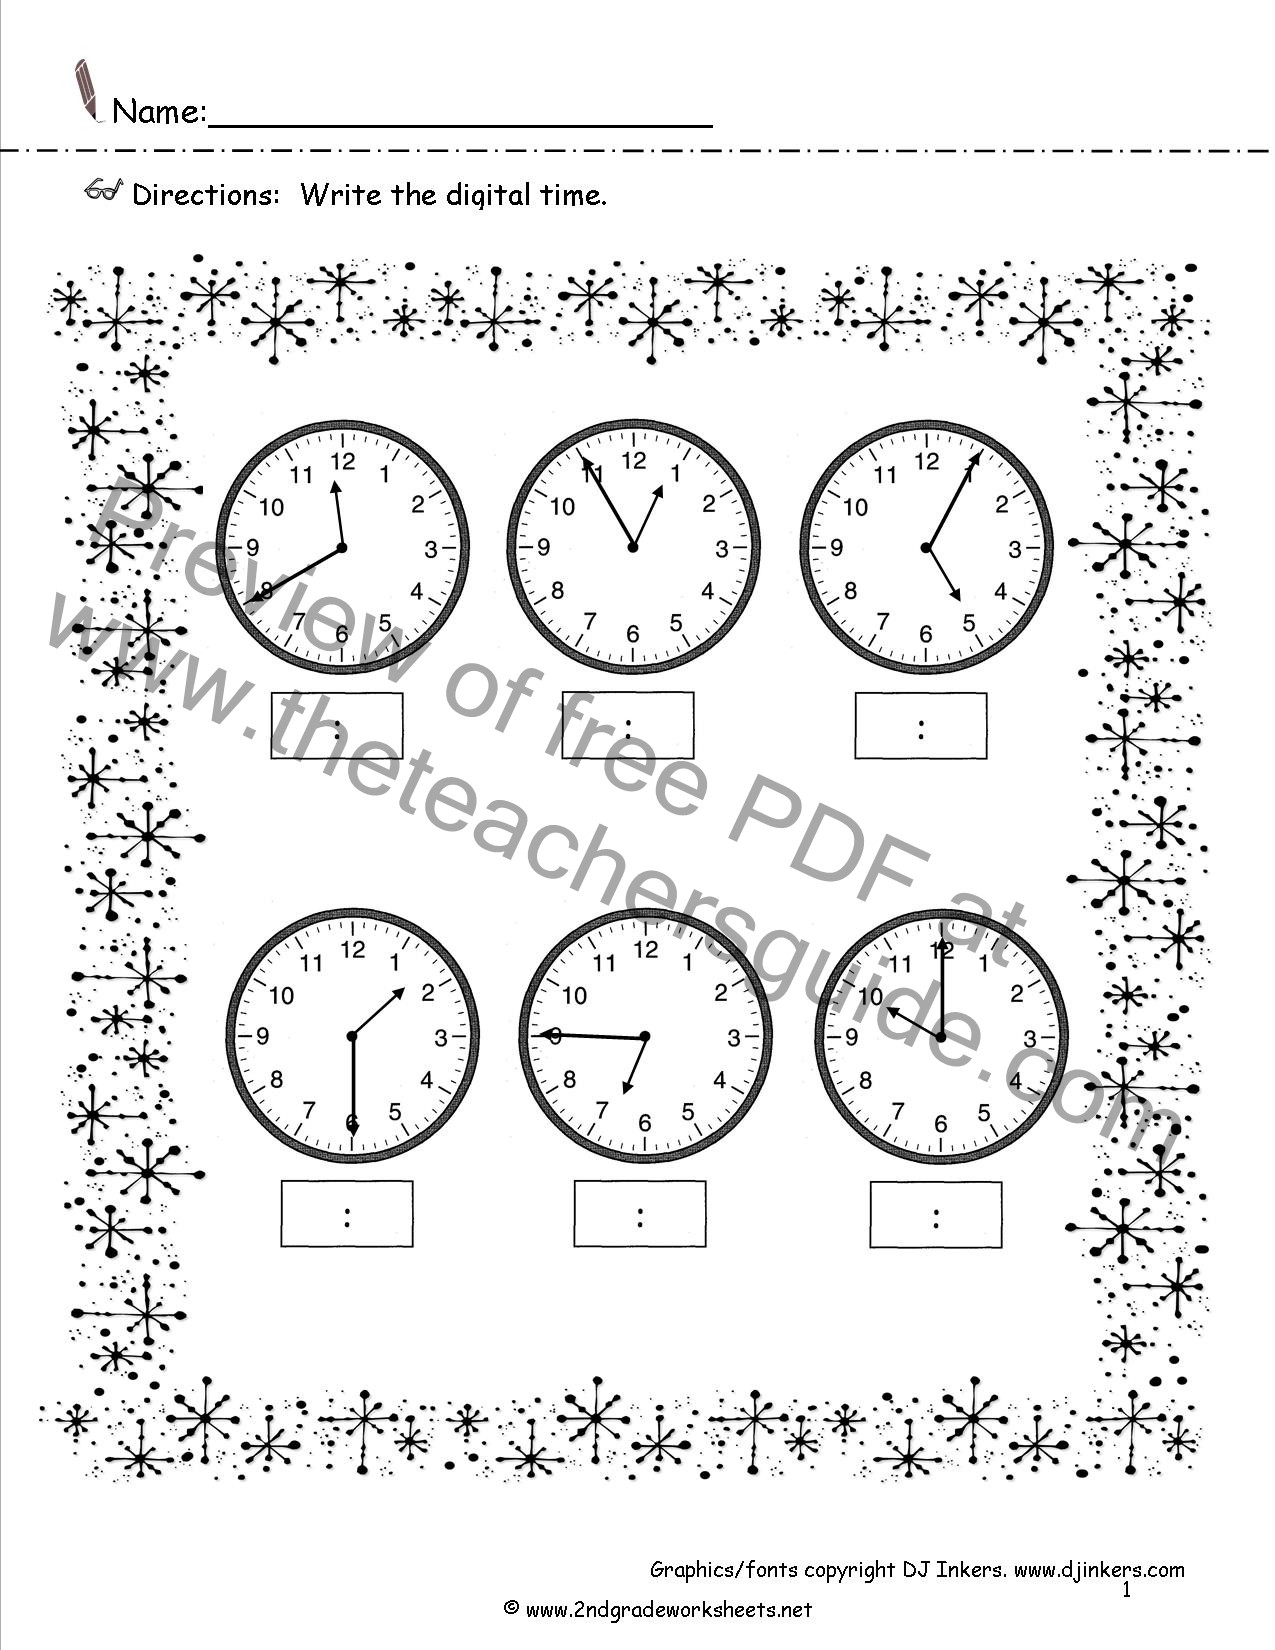 Theme Worksheets 5th Grade Winter Lesson Plans themes Printouts Crafts 5th Grade